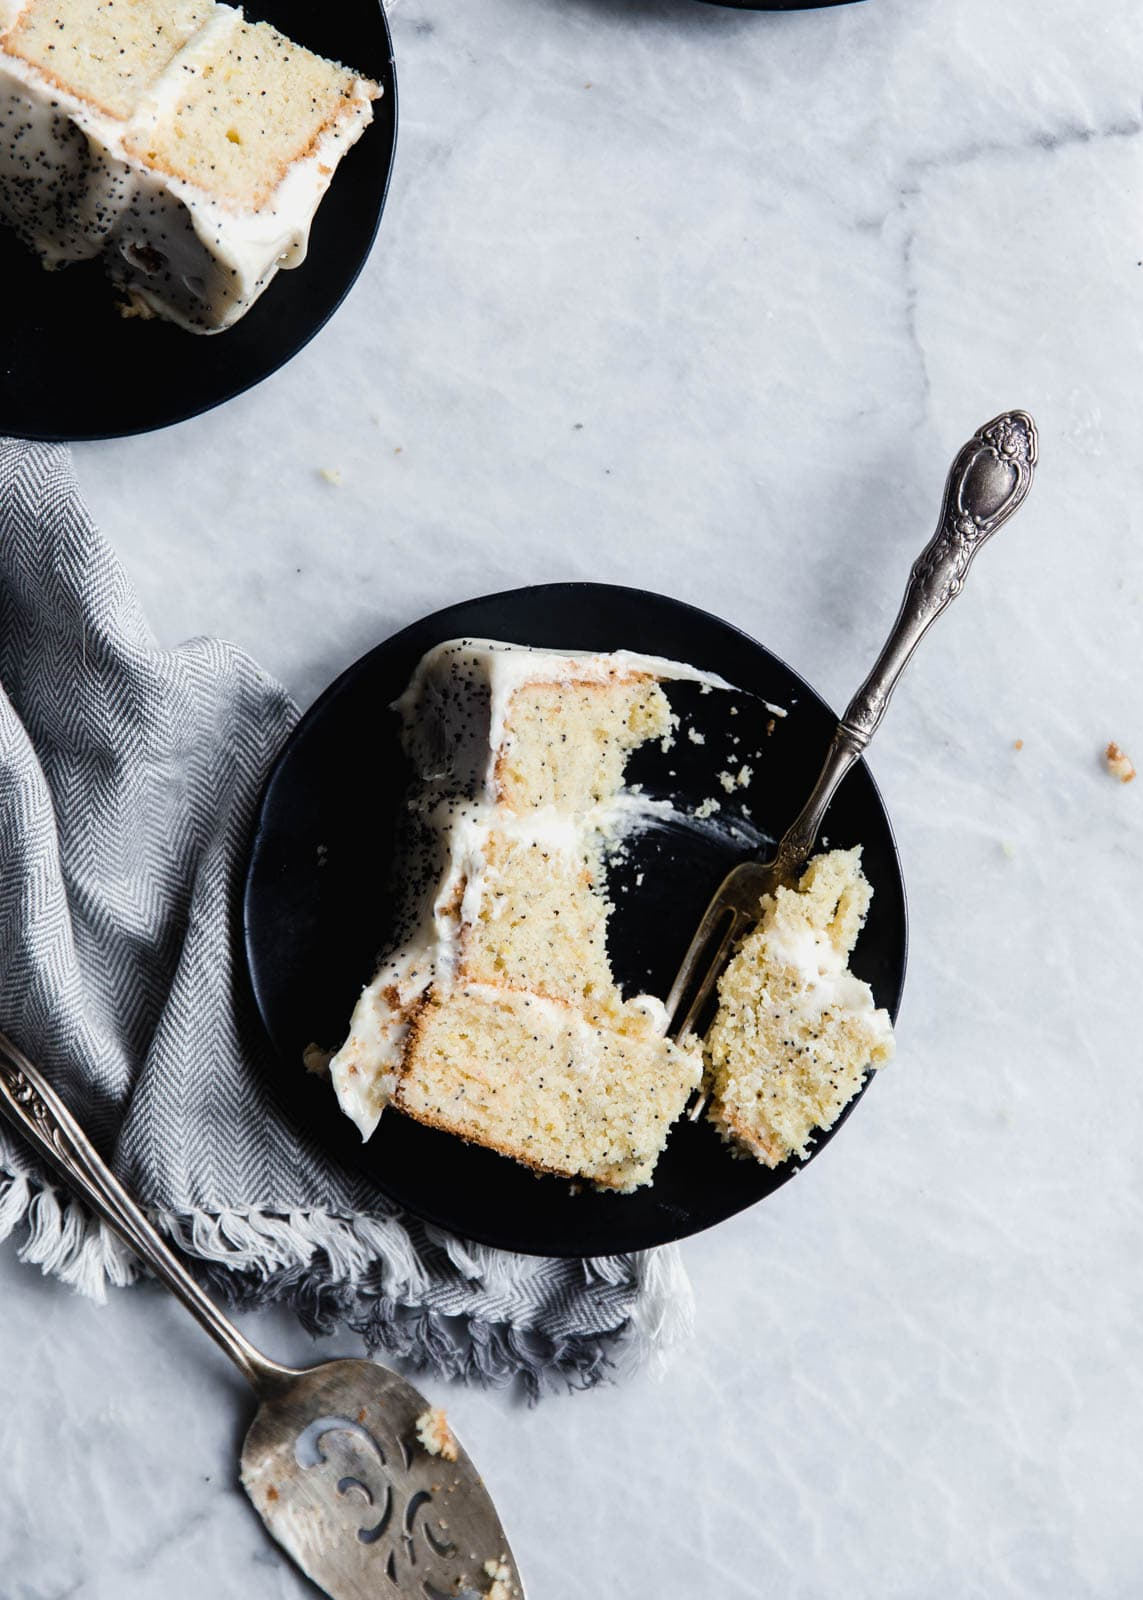 A luxurious Lemon Poppyseed Cake with lemon cream cheese frosting. Such a crowd-pleaser!